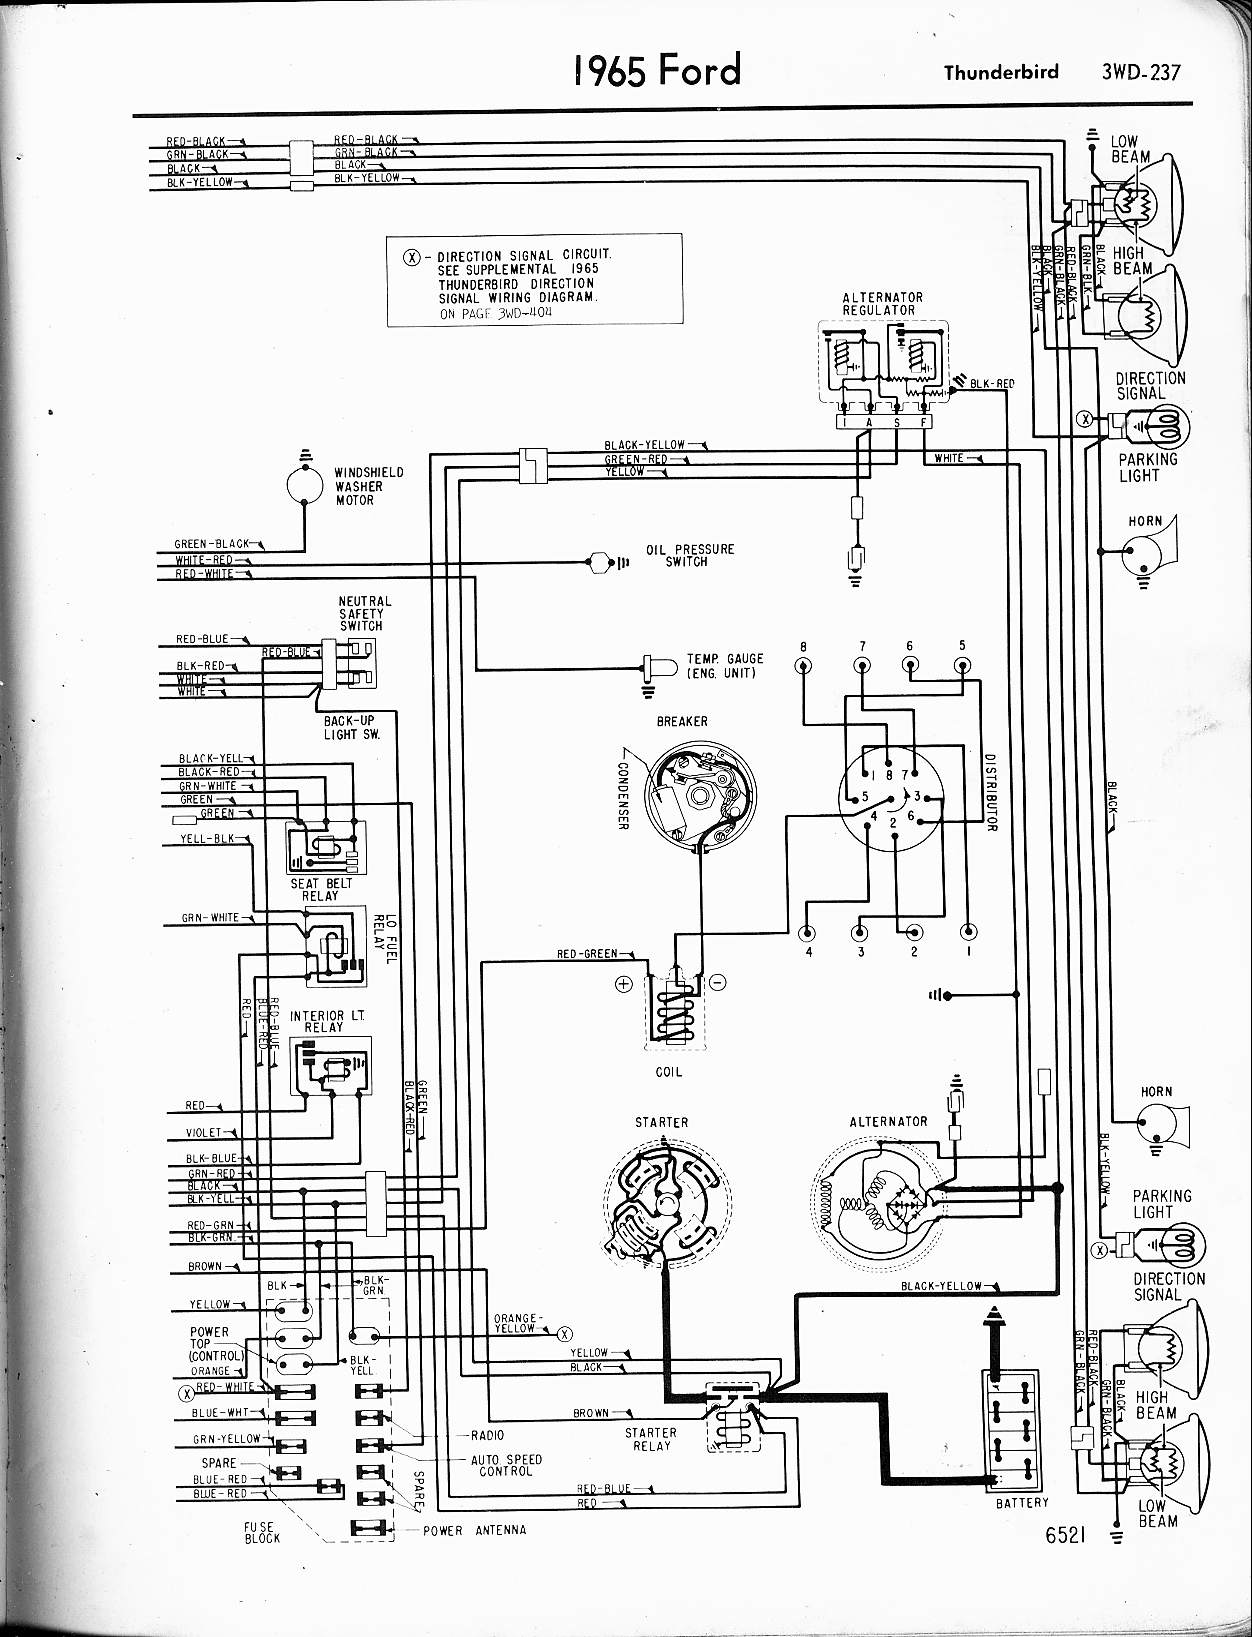 MWire5765 237 1964 thunderbird wiring diagram 1964 thunderbird stereo wiring 1964 Ford Fairlane at crackthecode.co